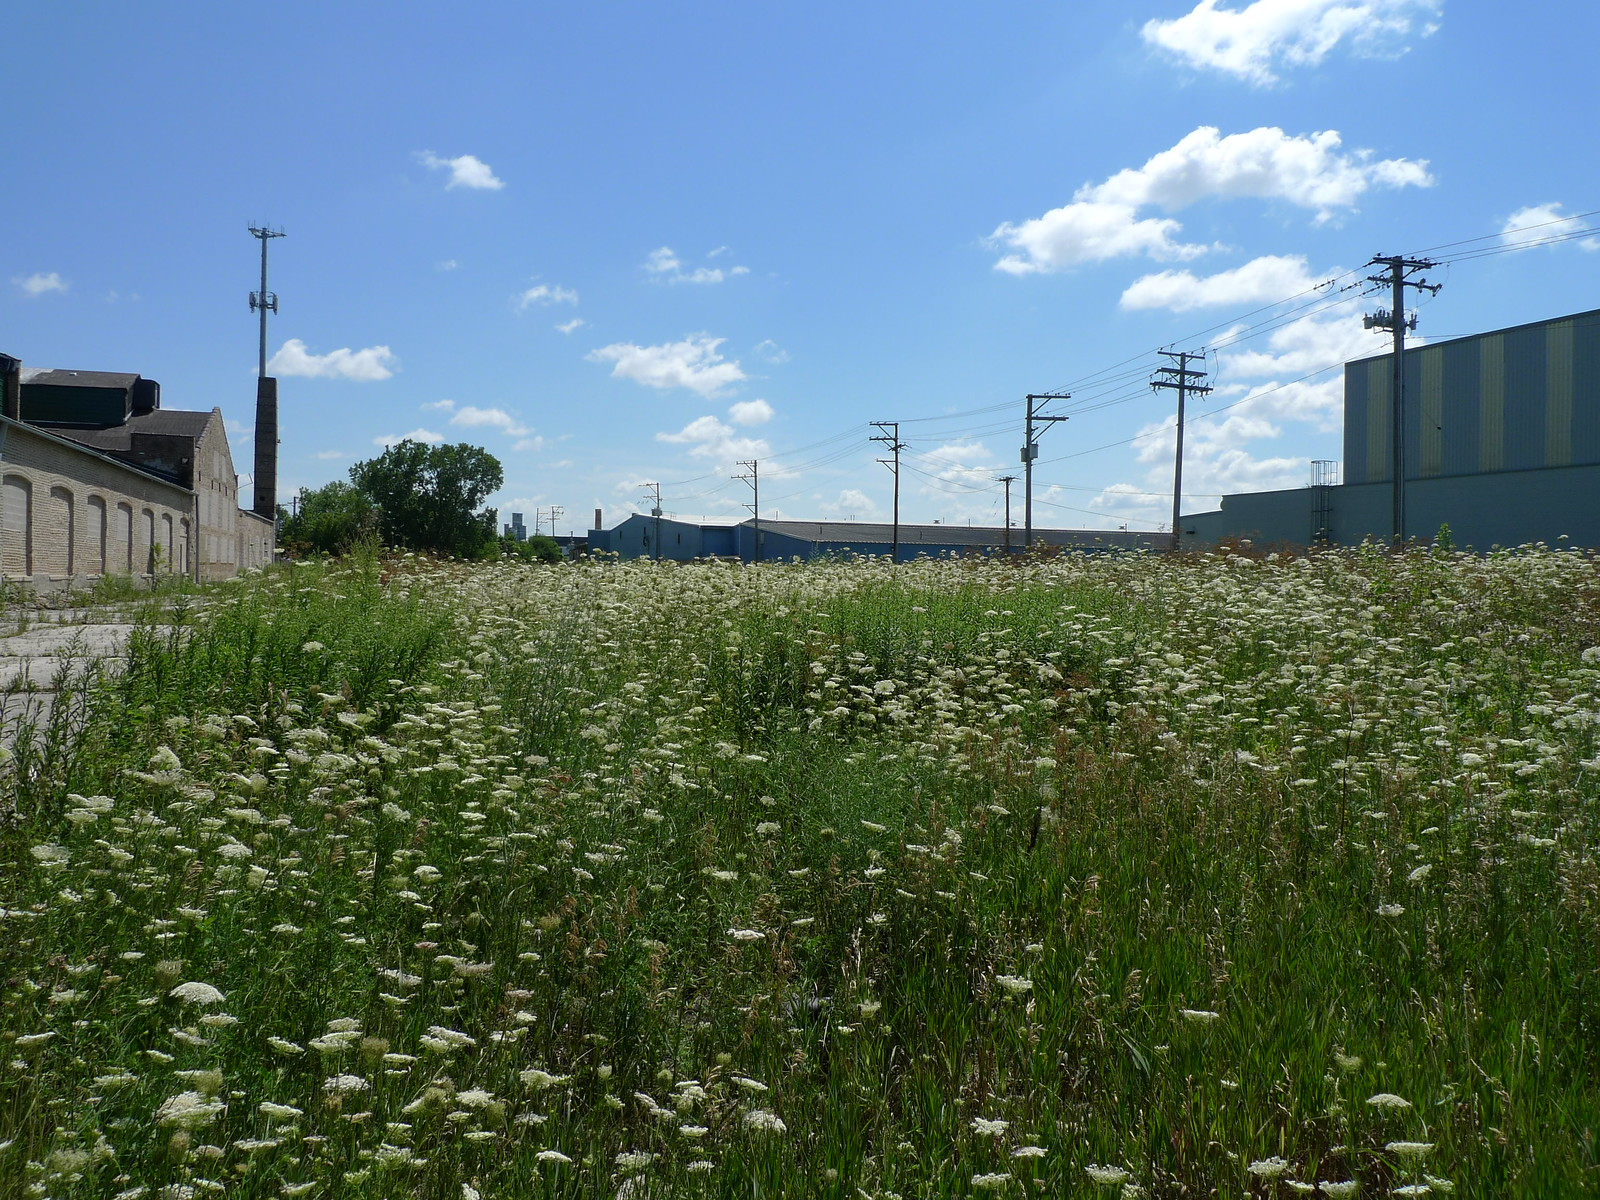 field of Queen Anne's Lace | by find myself a city (1001 Afternoons in Chicago)